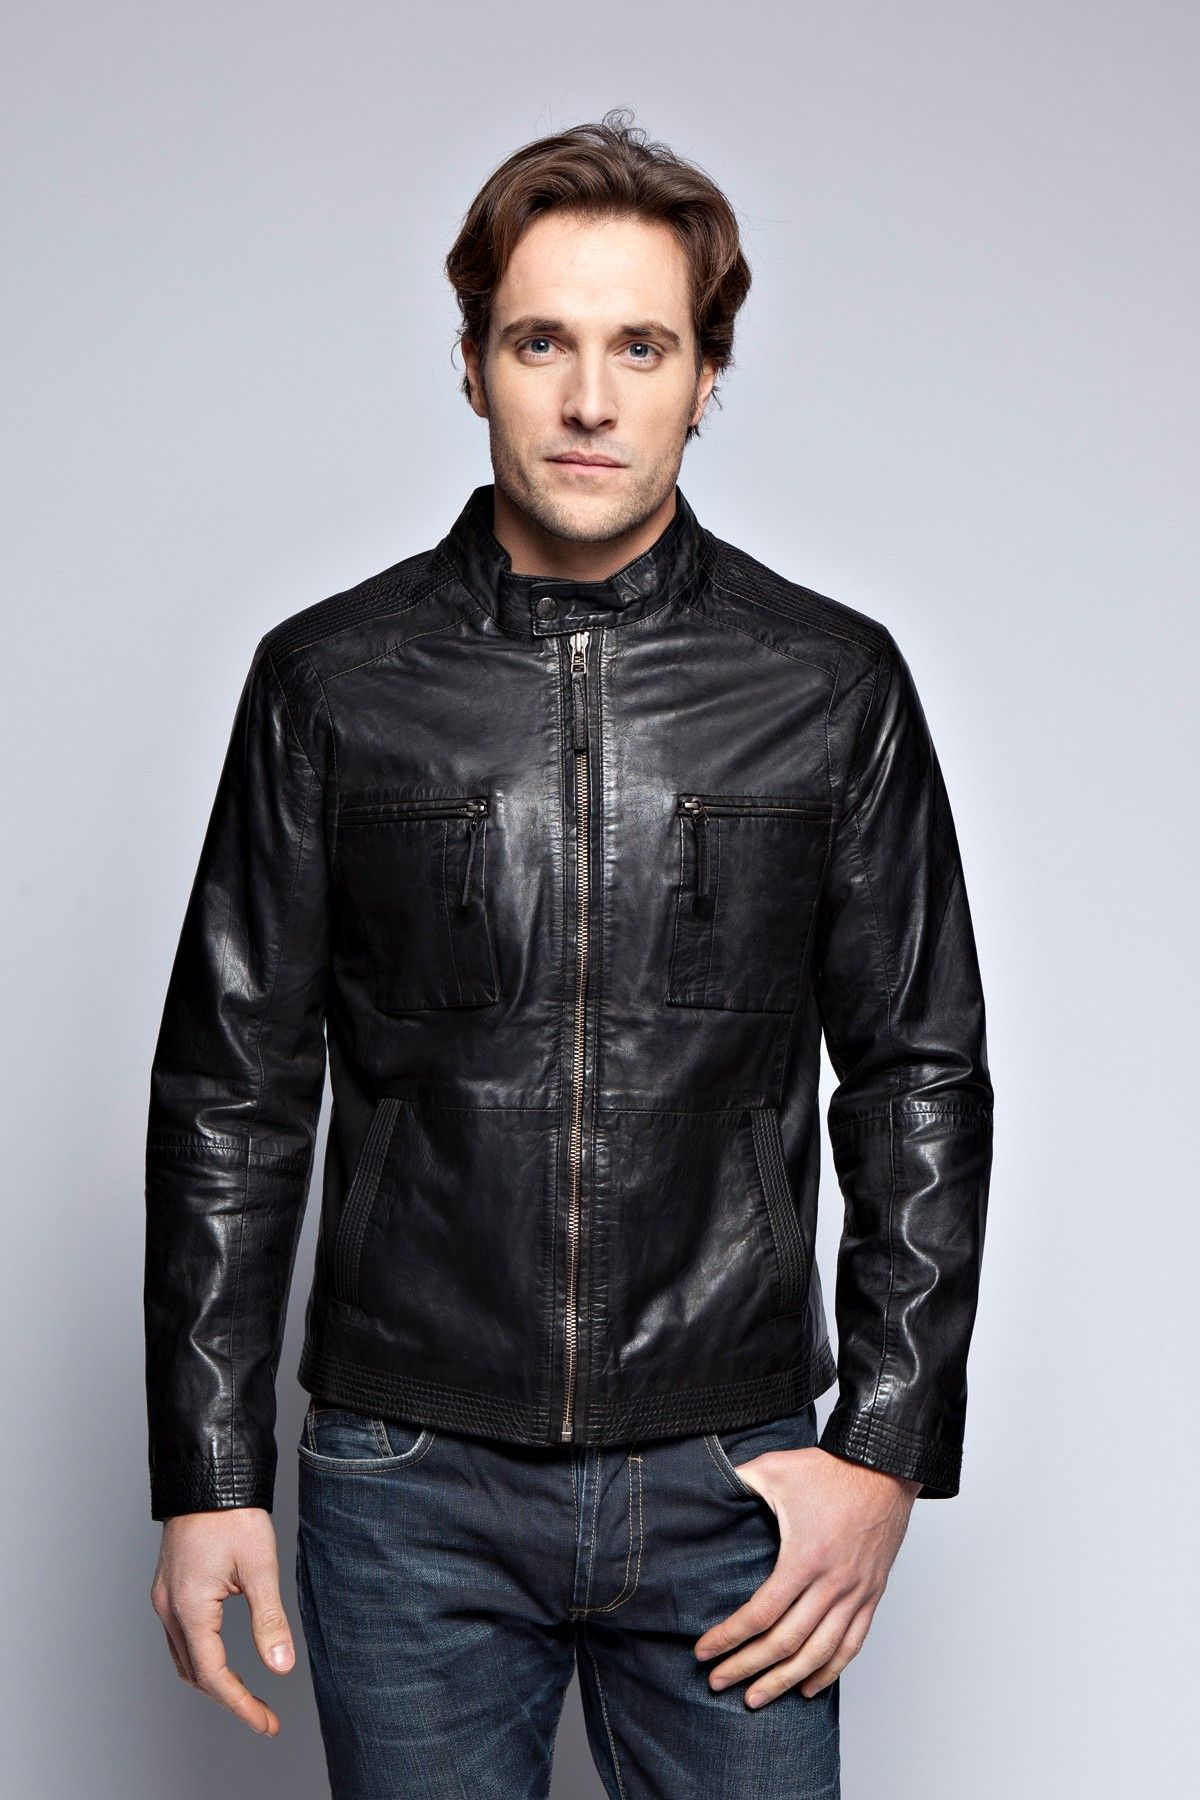 LEATHER JACKETS JOSH GIORGIO!  Shop Men's leather jackets at Prestige Cuir a french company in Paris!Browse our collection of designer men's leather jackets in a variety of styles and coloursA classic men's leather jacket is an investment piece that will transcend the seasons and will bring you great satisfaction!WE OFFER LEATHER JACKETS JOSH GIORGIO IN TWO COLORS: BLACK AND BROWN.YOU CAN FIND THESE LEATHER JACKETS JOSH GIORGIO ON OUR WEBSITE: www.prestigecuir.fr/en